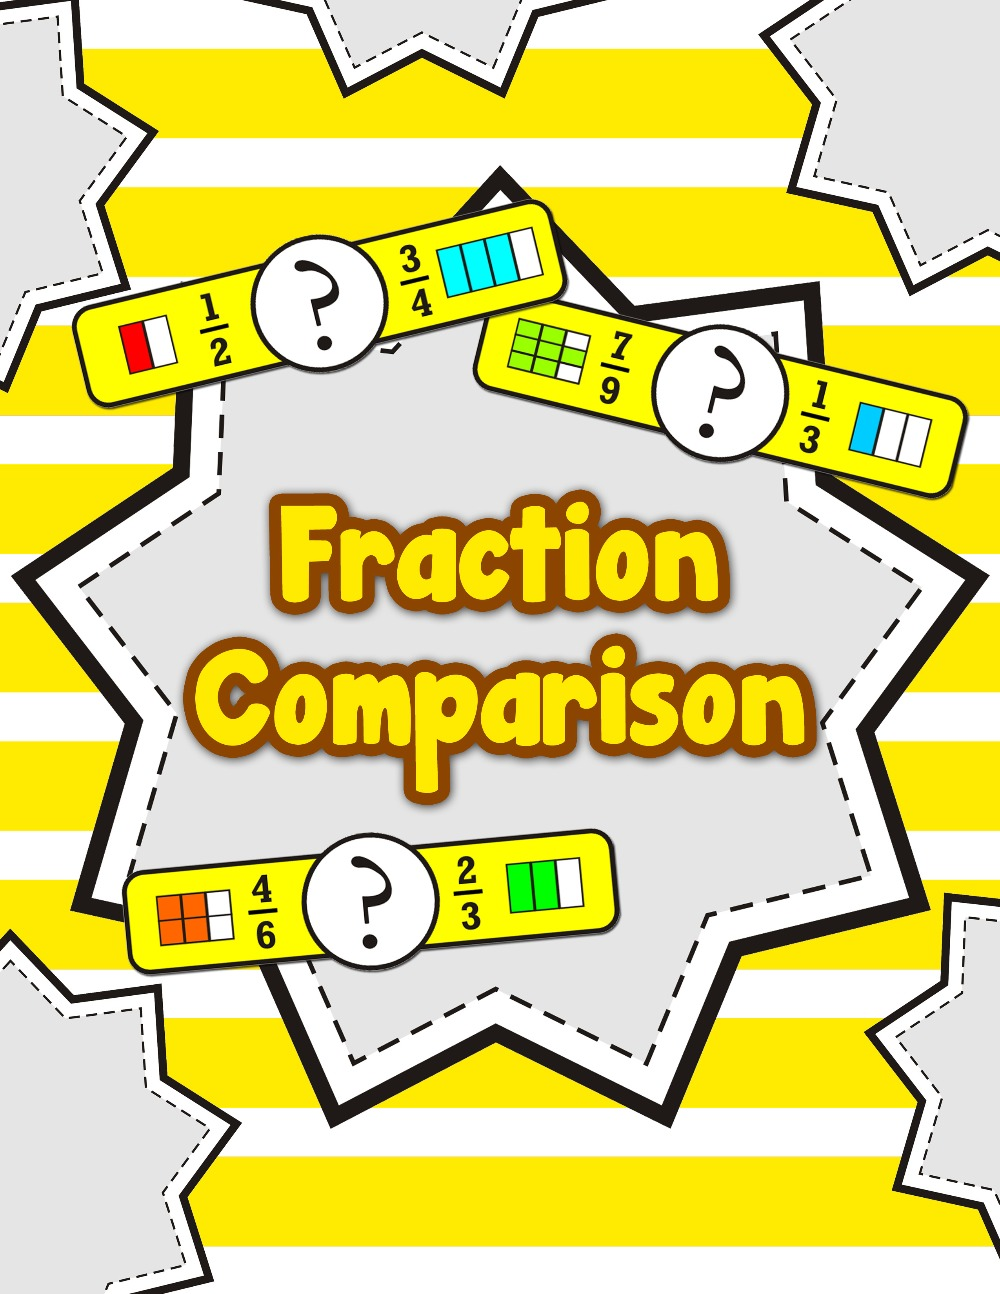 Fraction Comparison